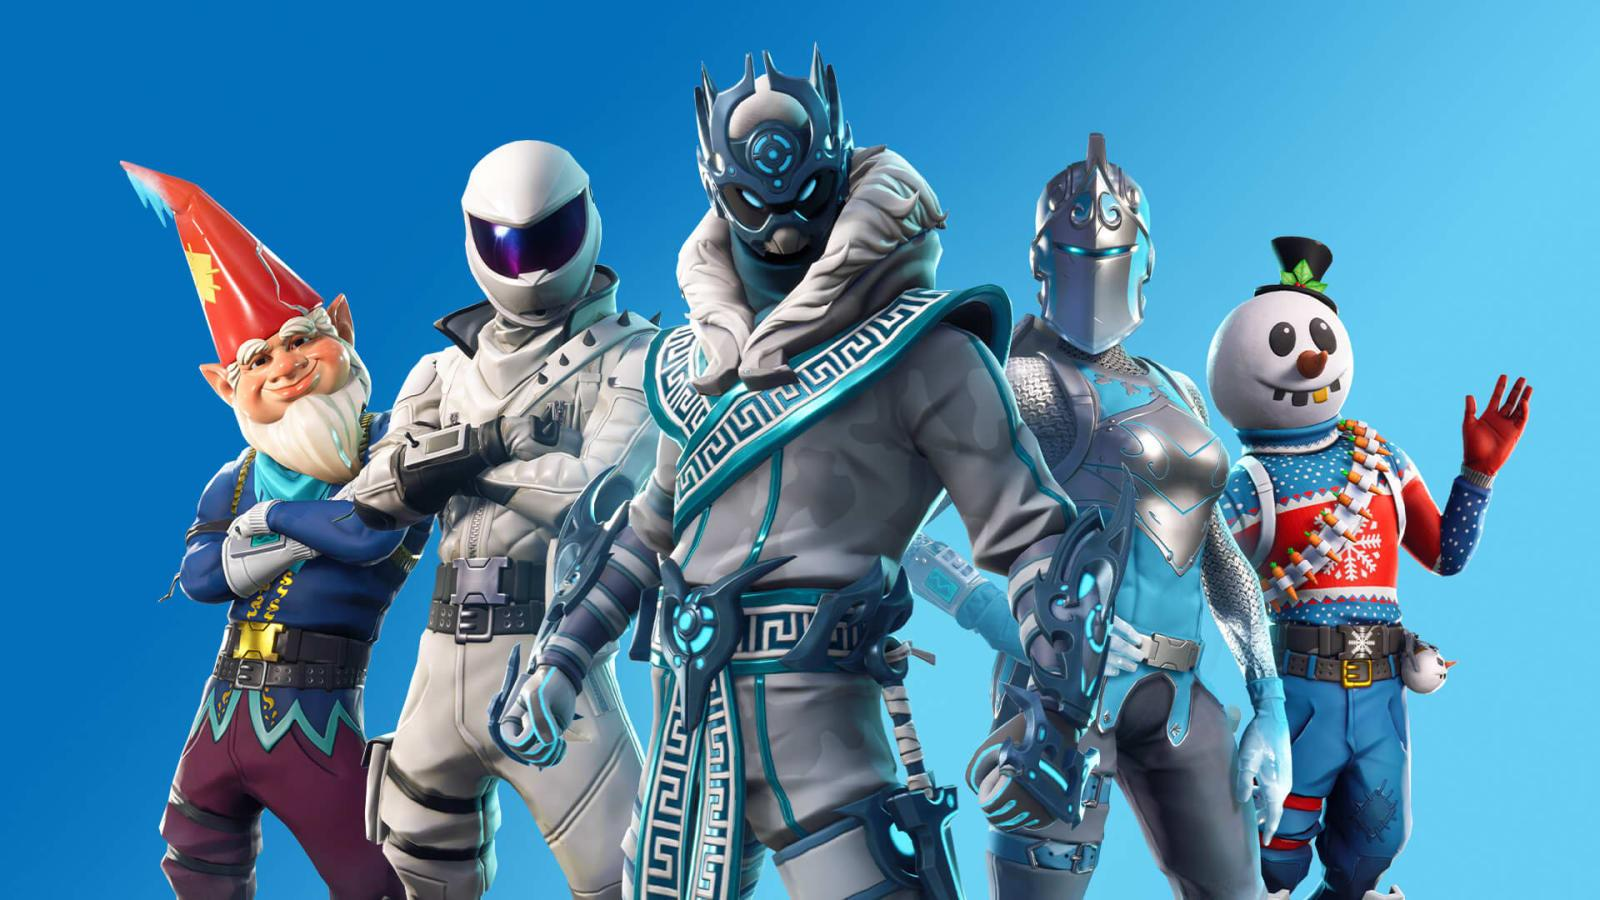 How Many Players Can Play Fortnite On Same Ps4 Fortnite Adds Split Screen Multiplayer On Ps4 And Xbox One Engadget